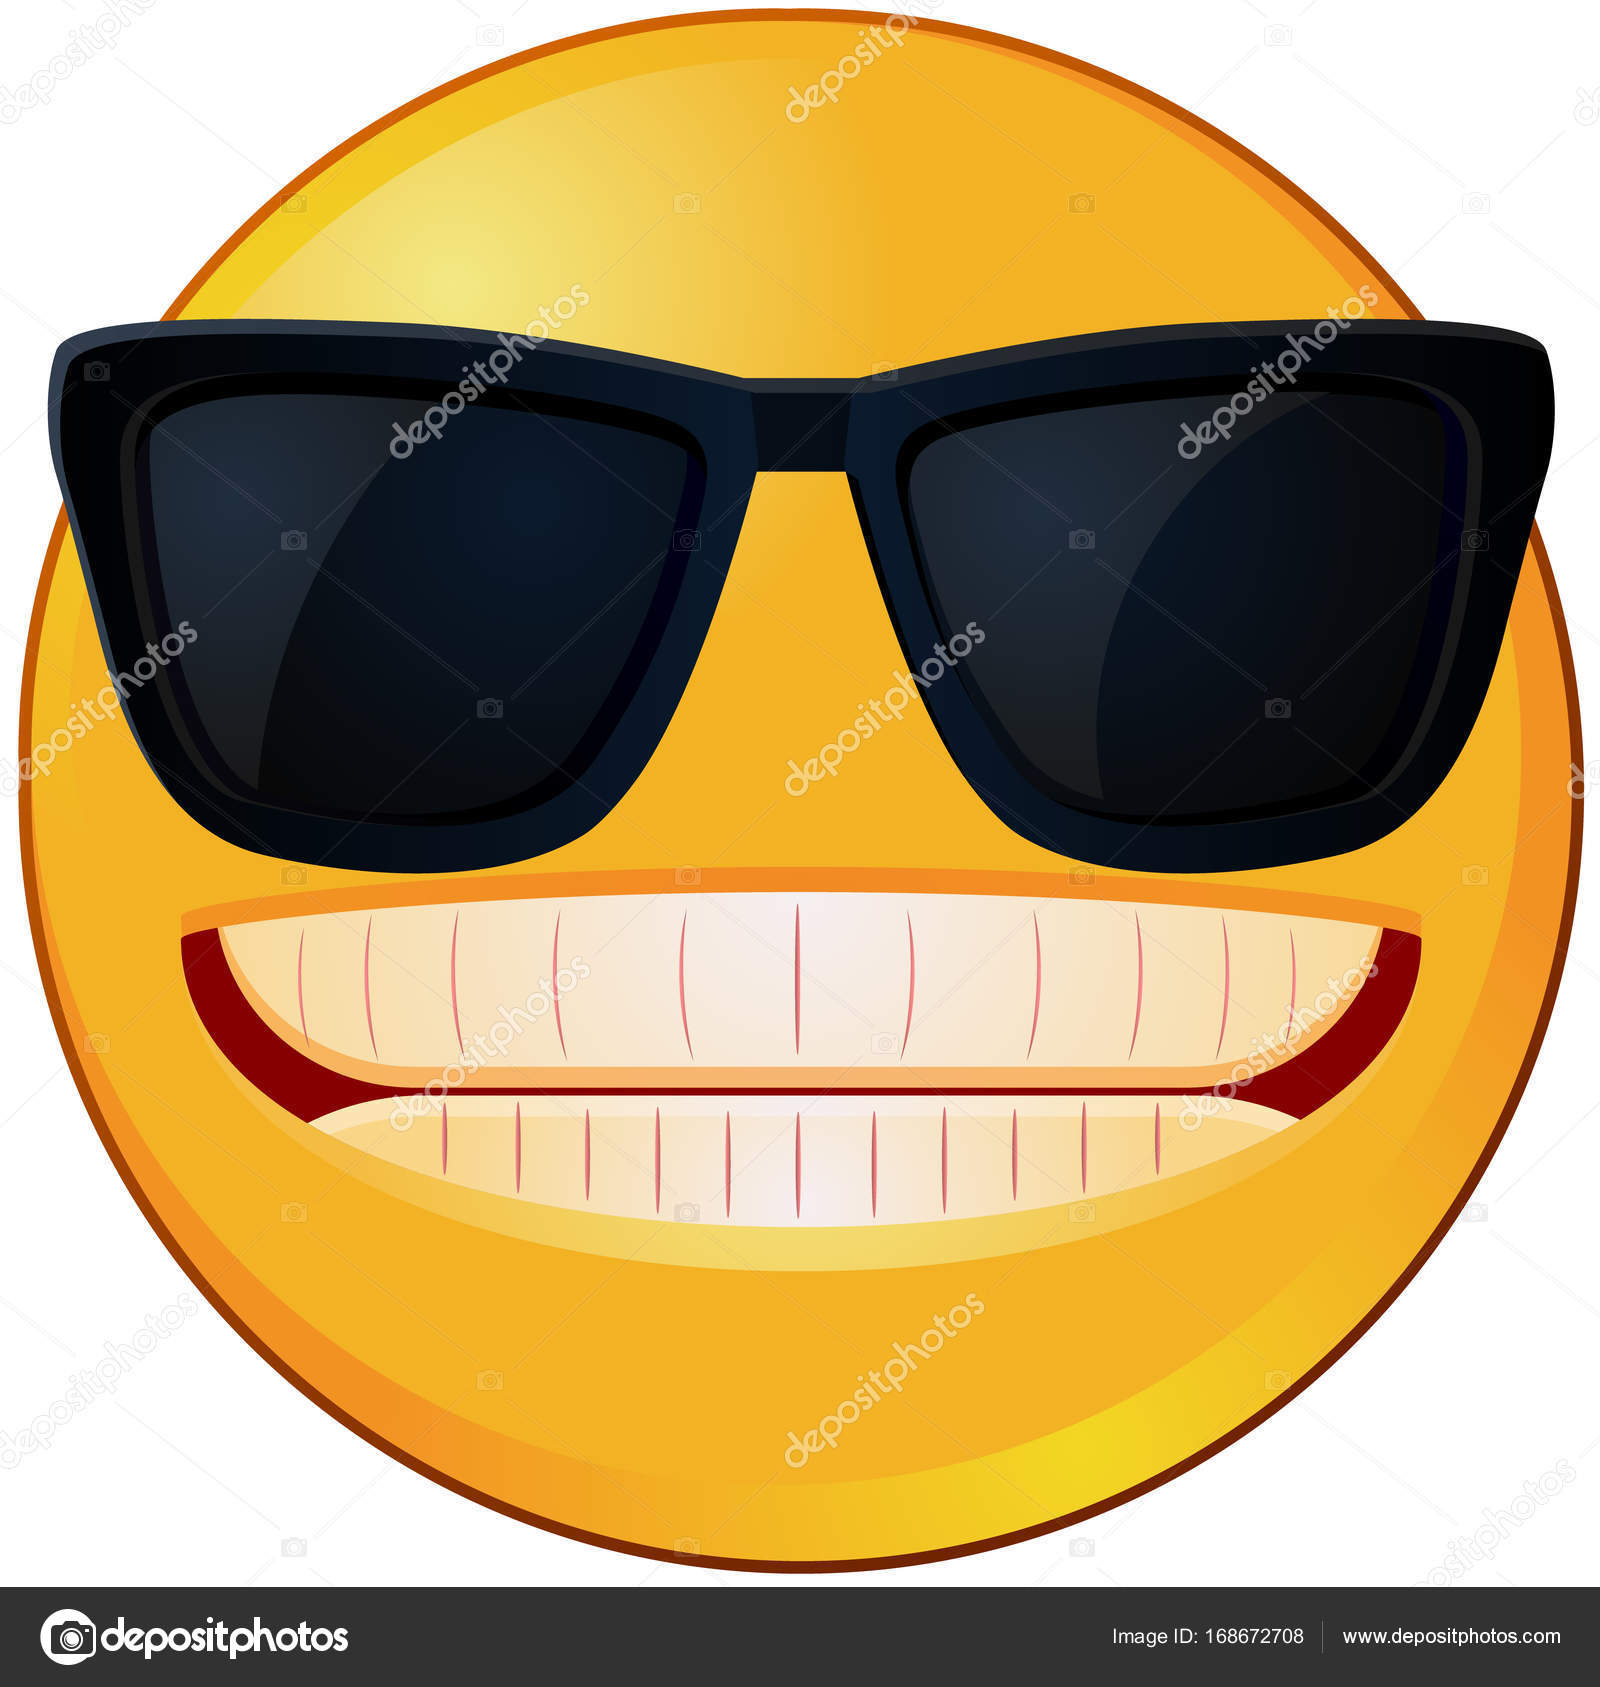 Cool emoji with shades vector stock vector webstocker 168672708 cool emoji with shades vector stock vector biocorpaavc Images